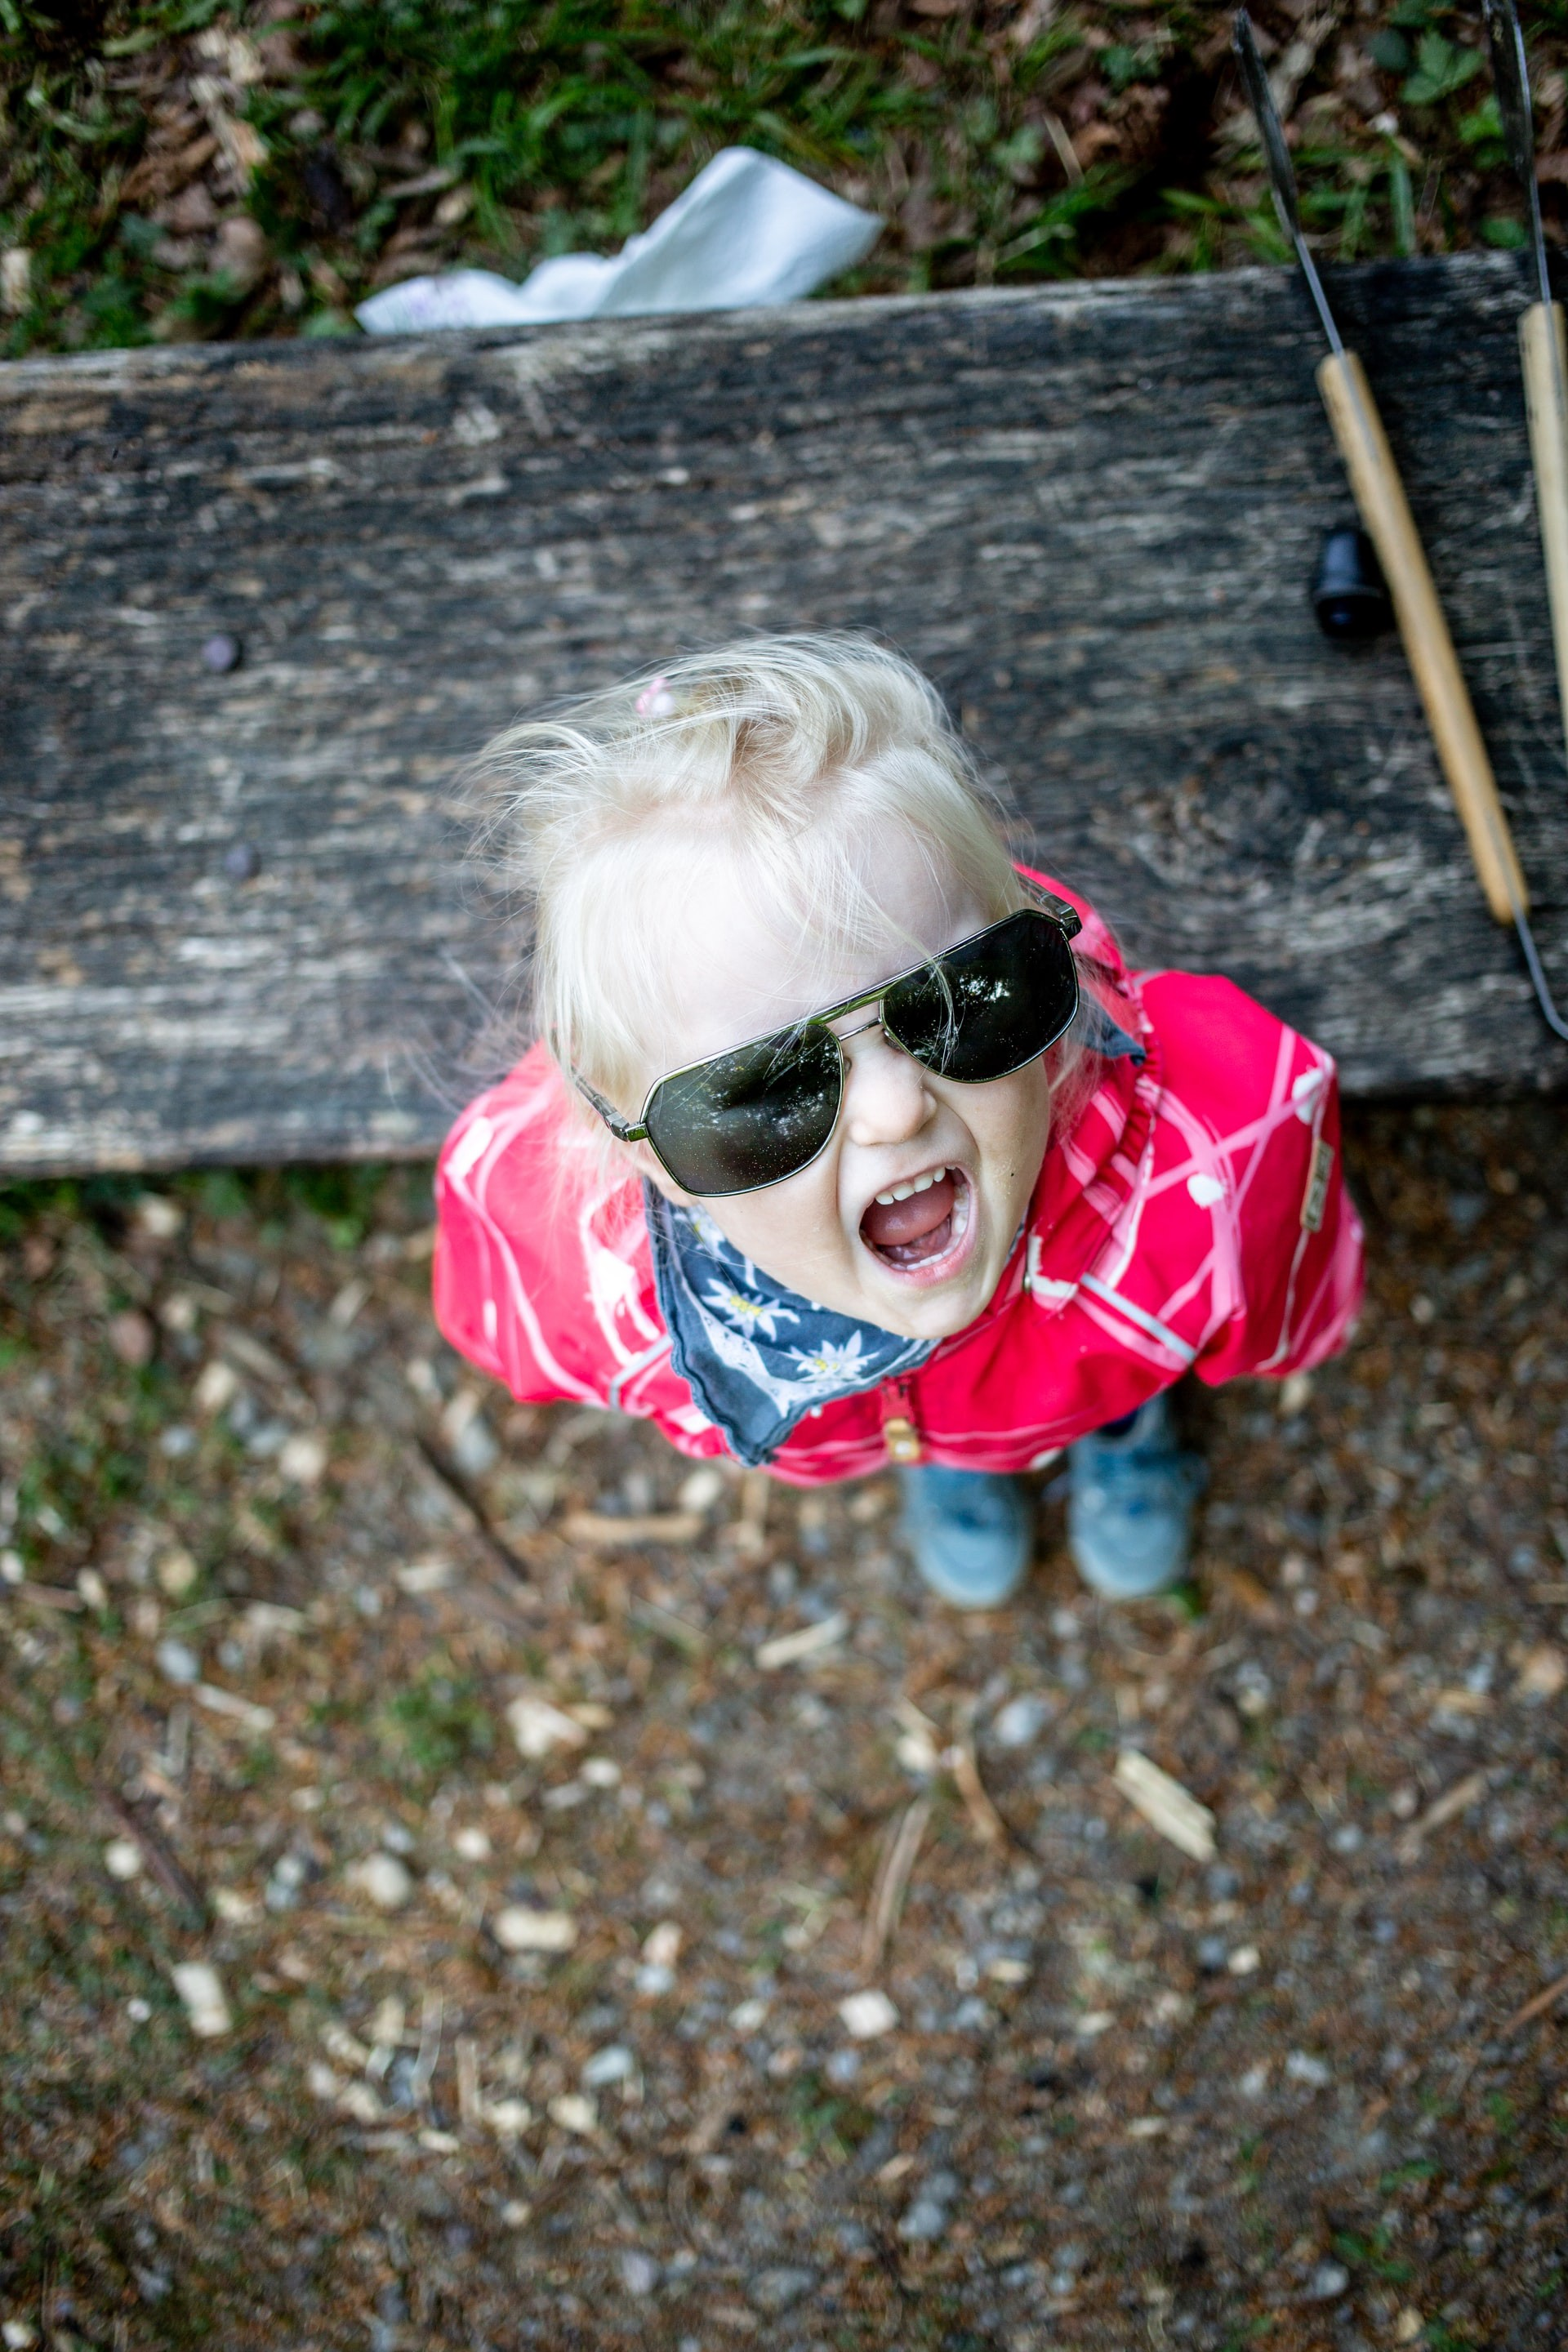 Child wearing sunglasses looking up at the camera with mouth open.